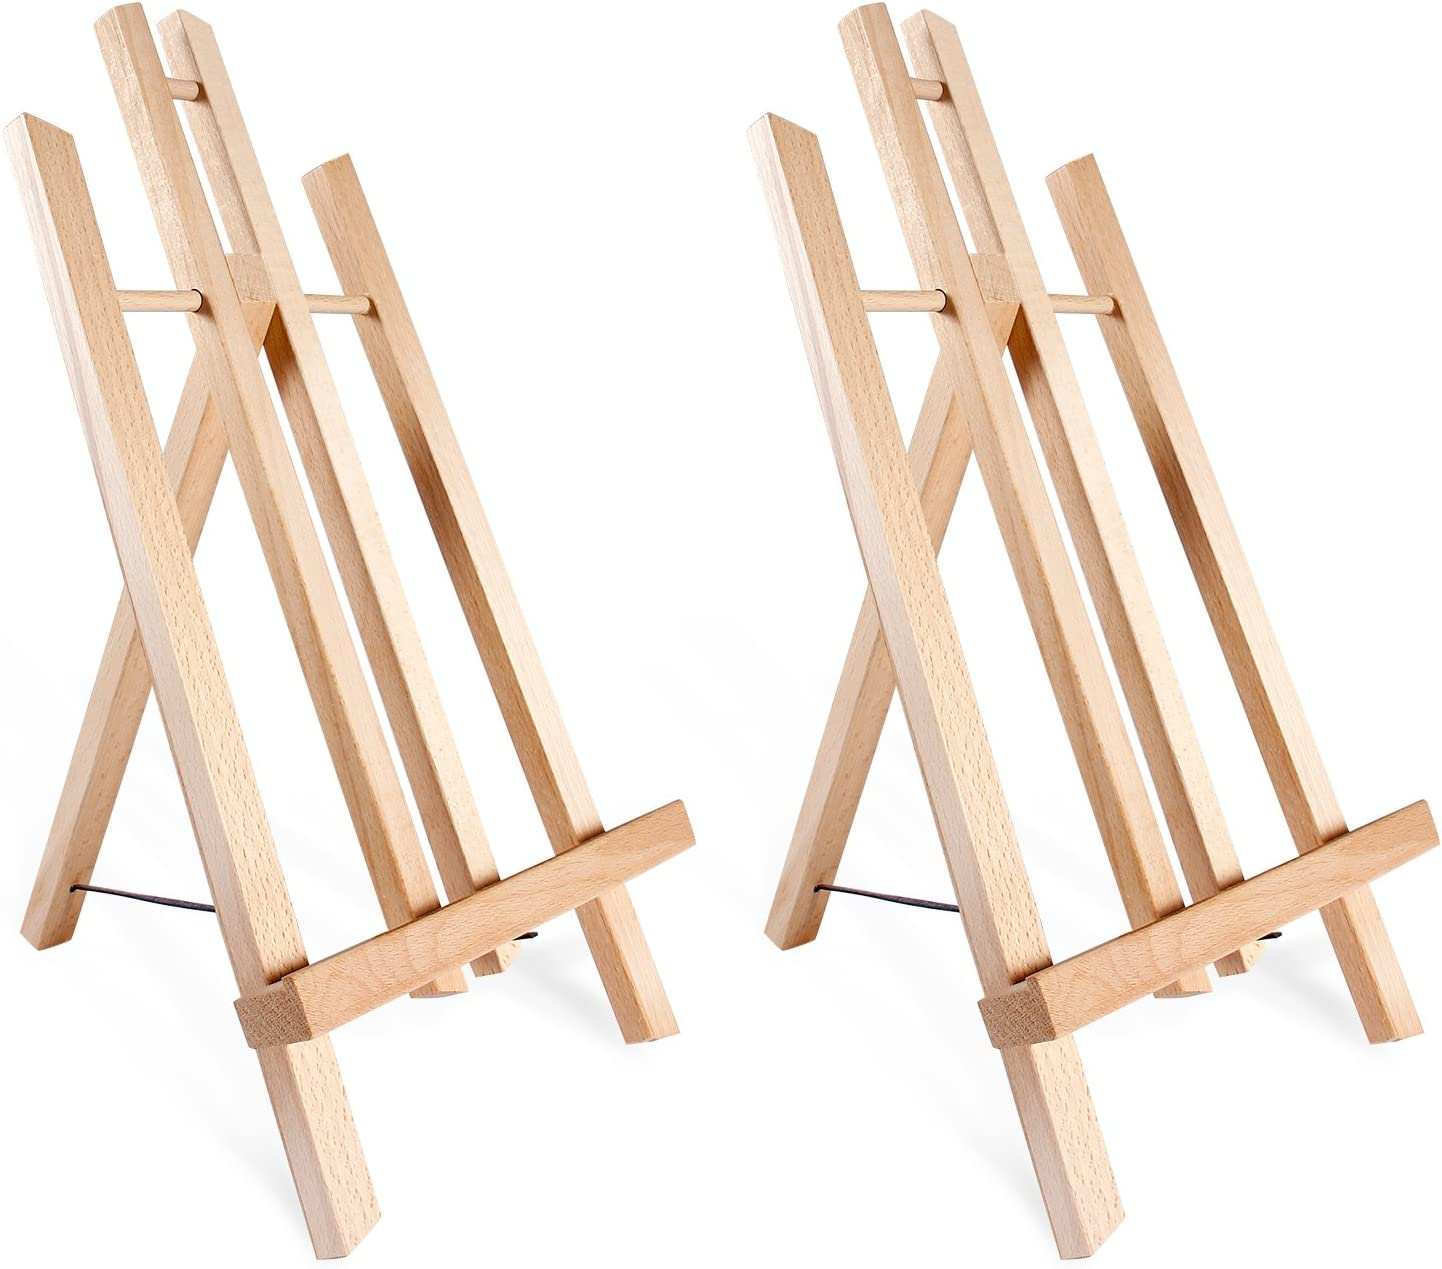 Tabletop Art Easel Set Ohuhu 14 Tall Display Stand A Frame Mini Wood Painting Easels For Kids Artist Adults Students Classroom Table Top Display 2 Pack Art Supplies Gift Amazon Ca Home Kitchen